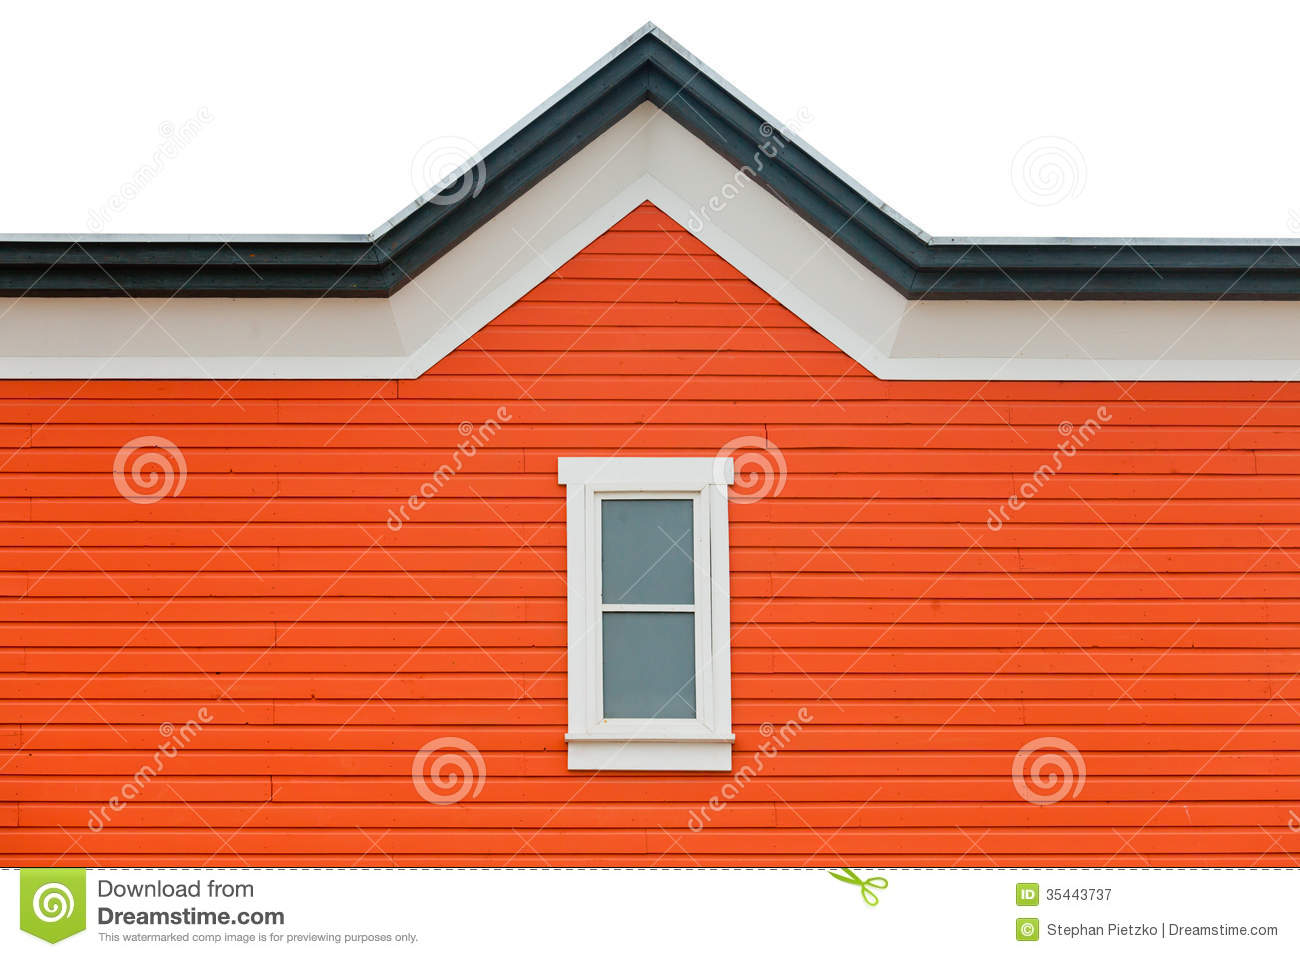 Exterior wall orange siding window and roof trim royalty for Exterior background